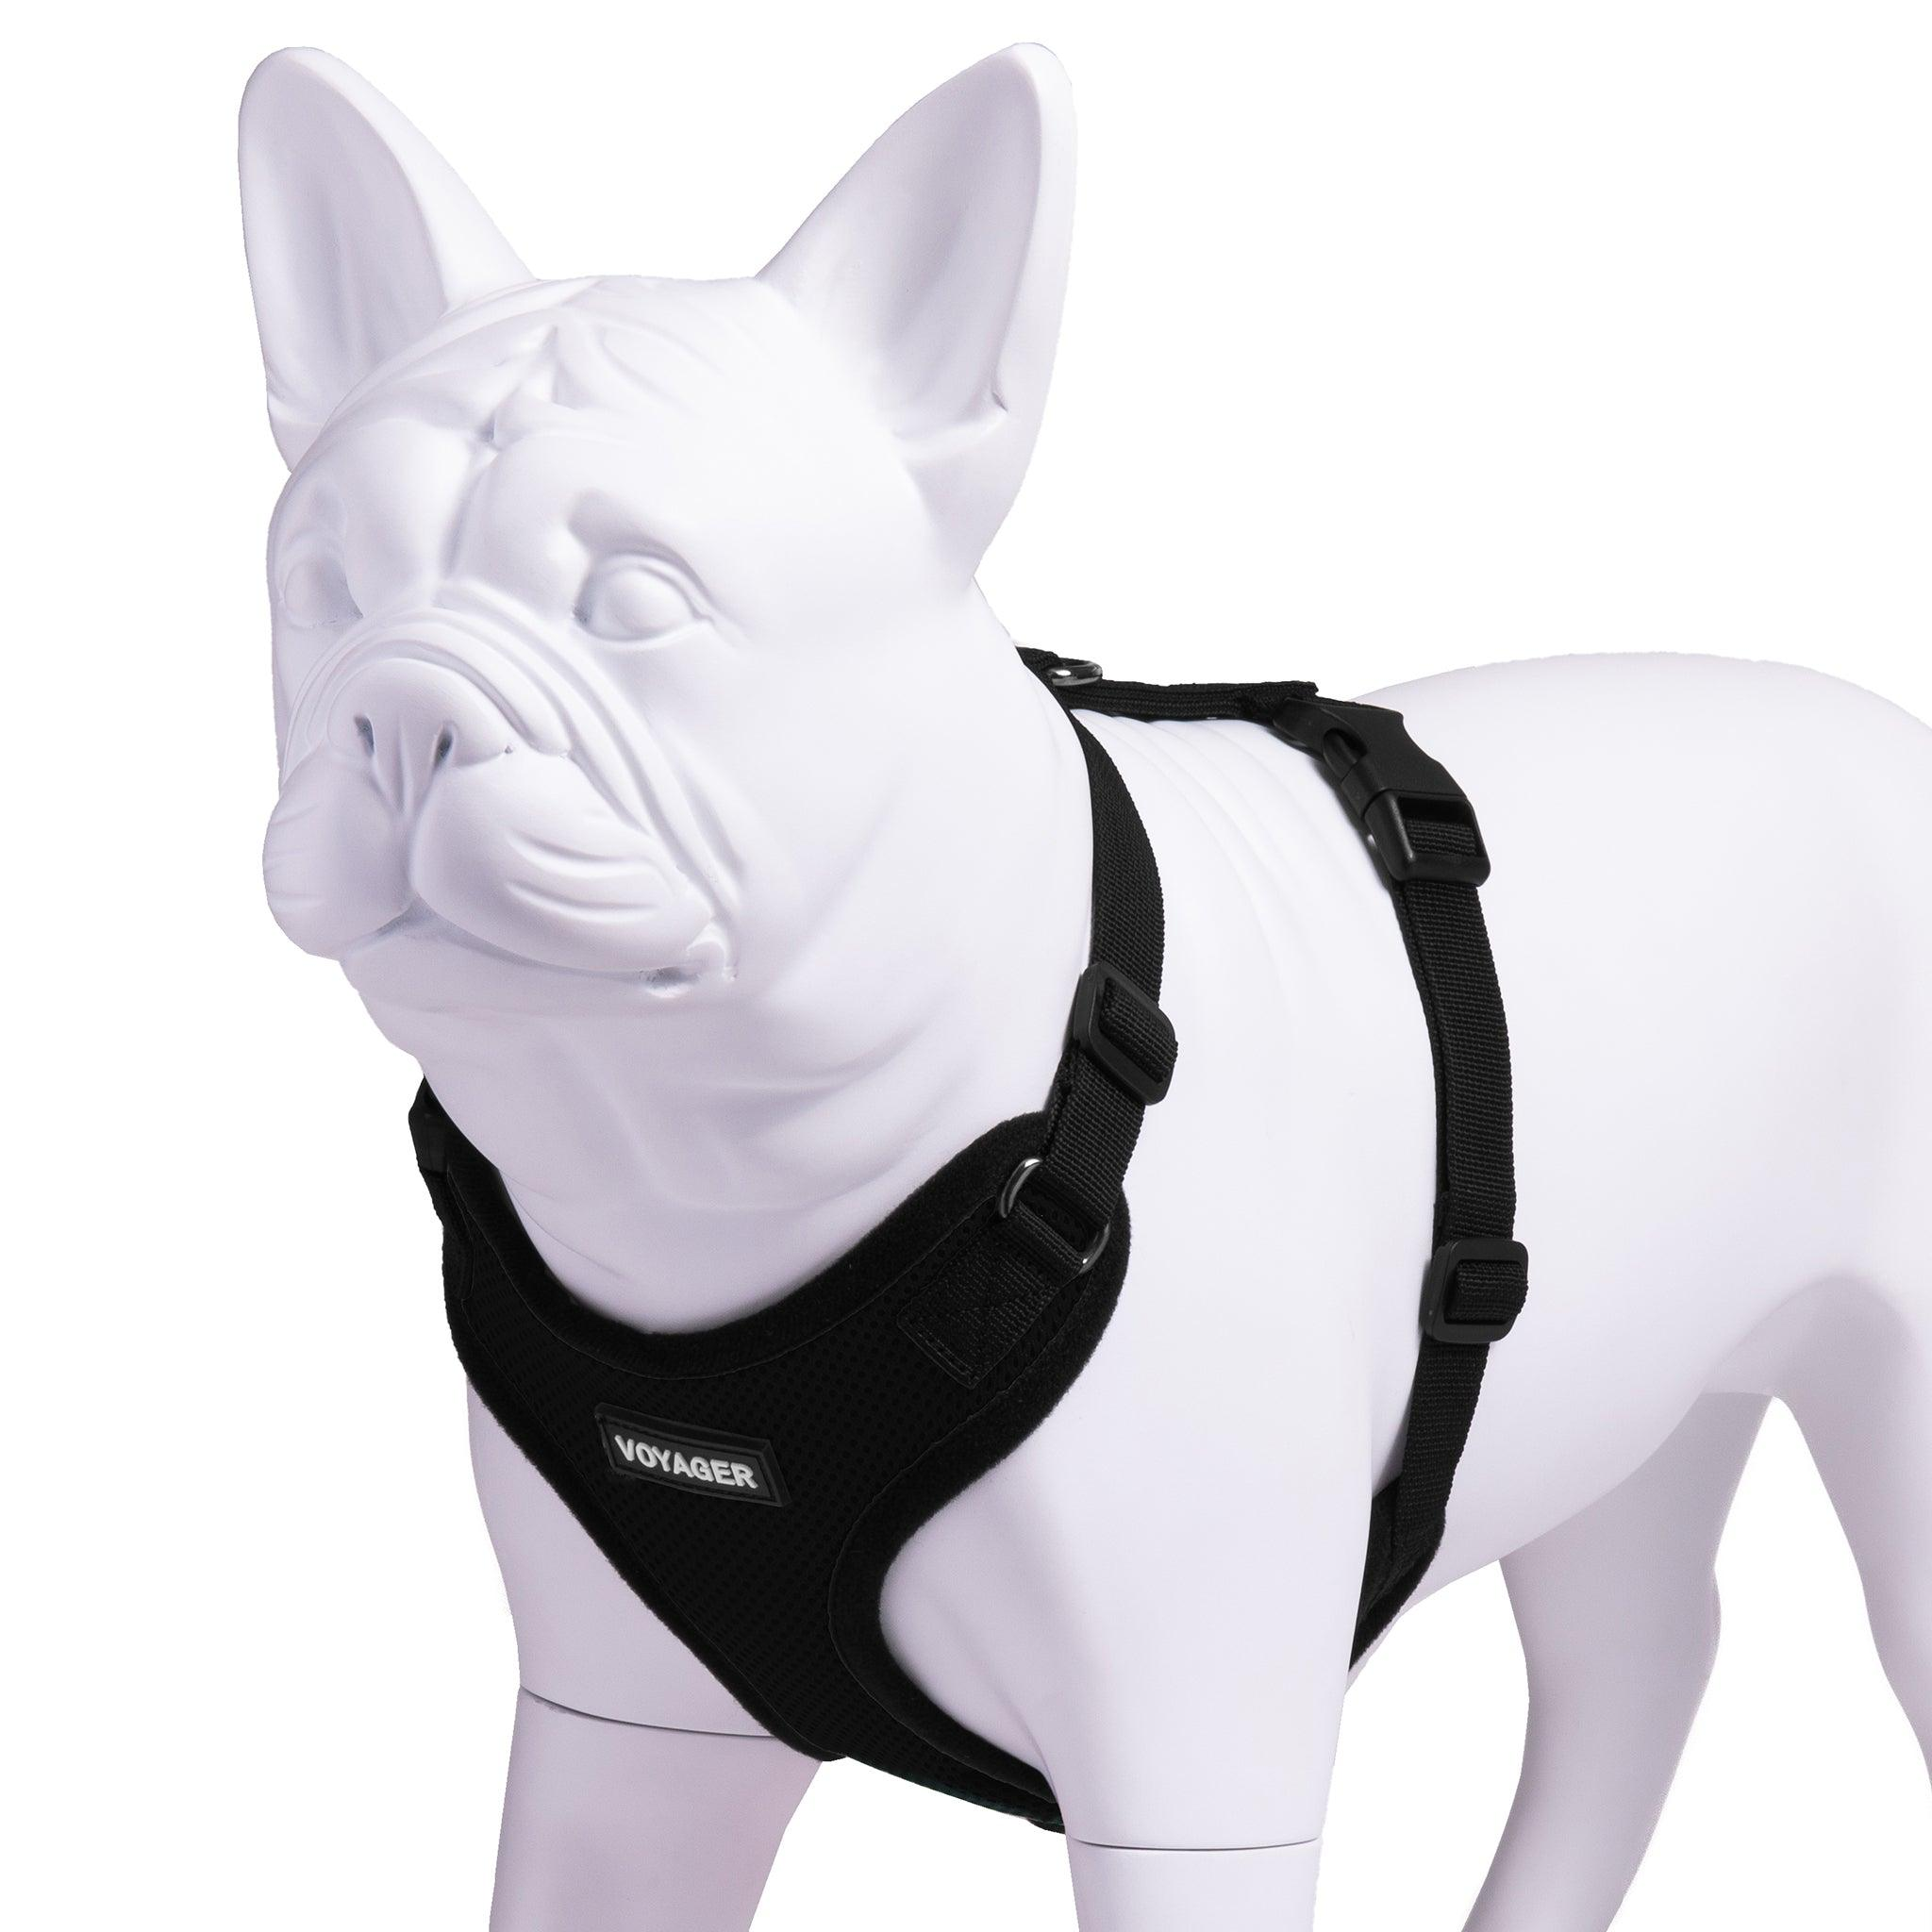 VOYAGER Step-In Lock Dog Harness in Black with Matching Trim and Webbing - Expanded